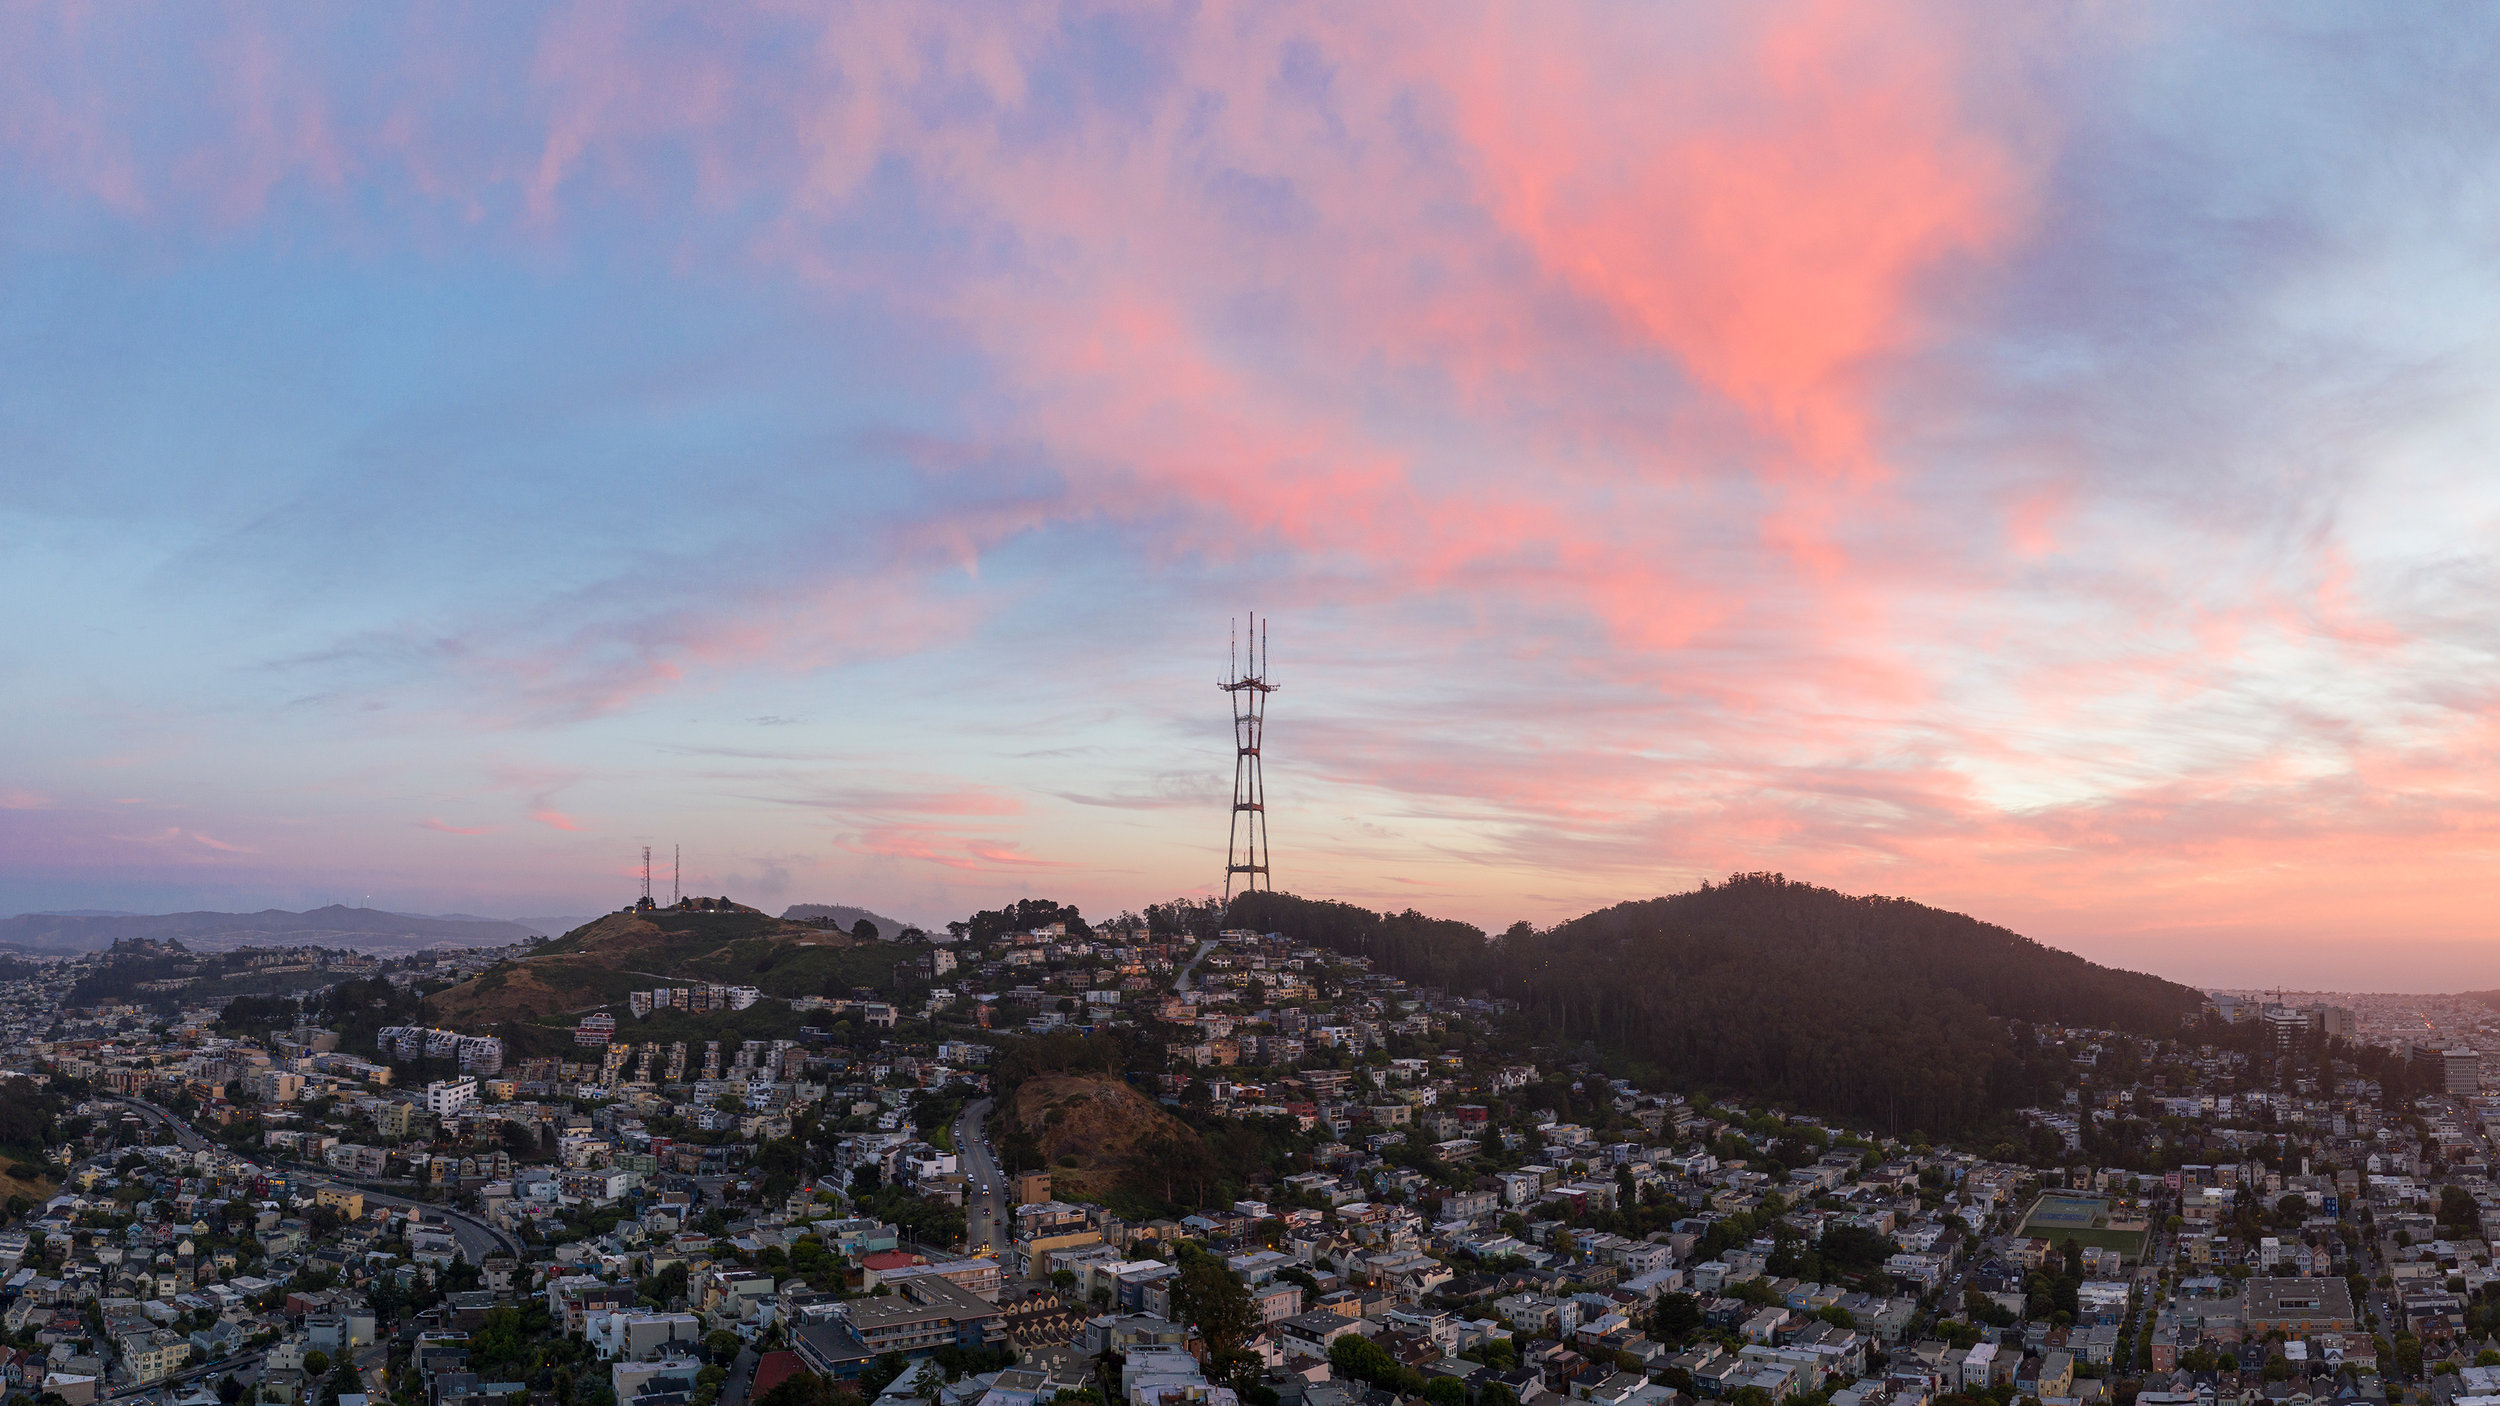 Sutro Tower, from the Apartment Roof